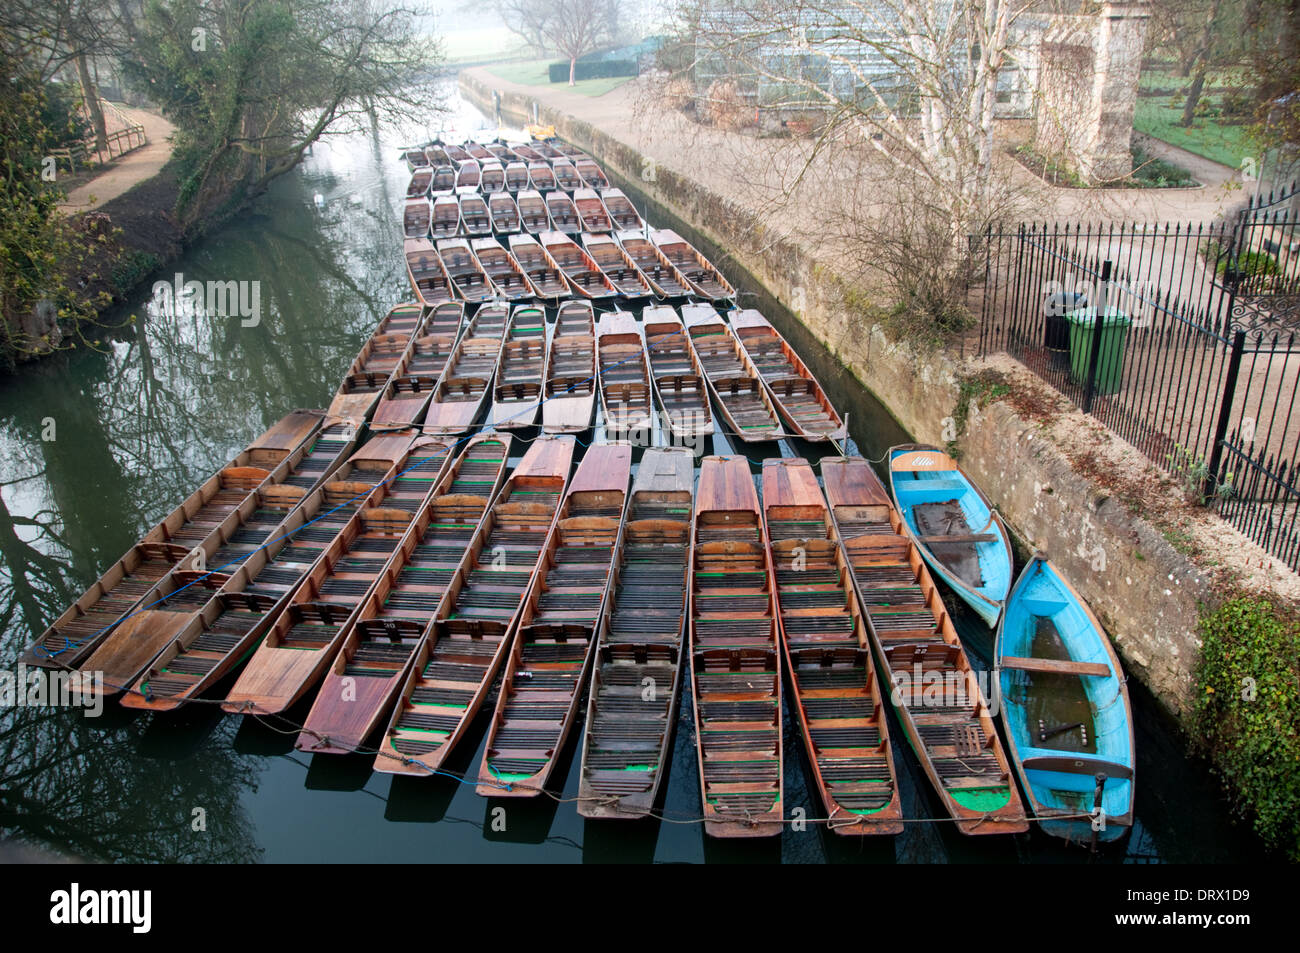 Empty punts on River Cherwell at Oxford - Stock Image